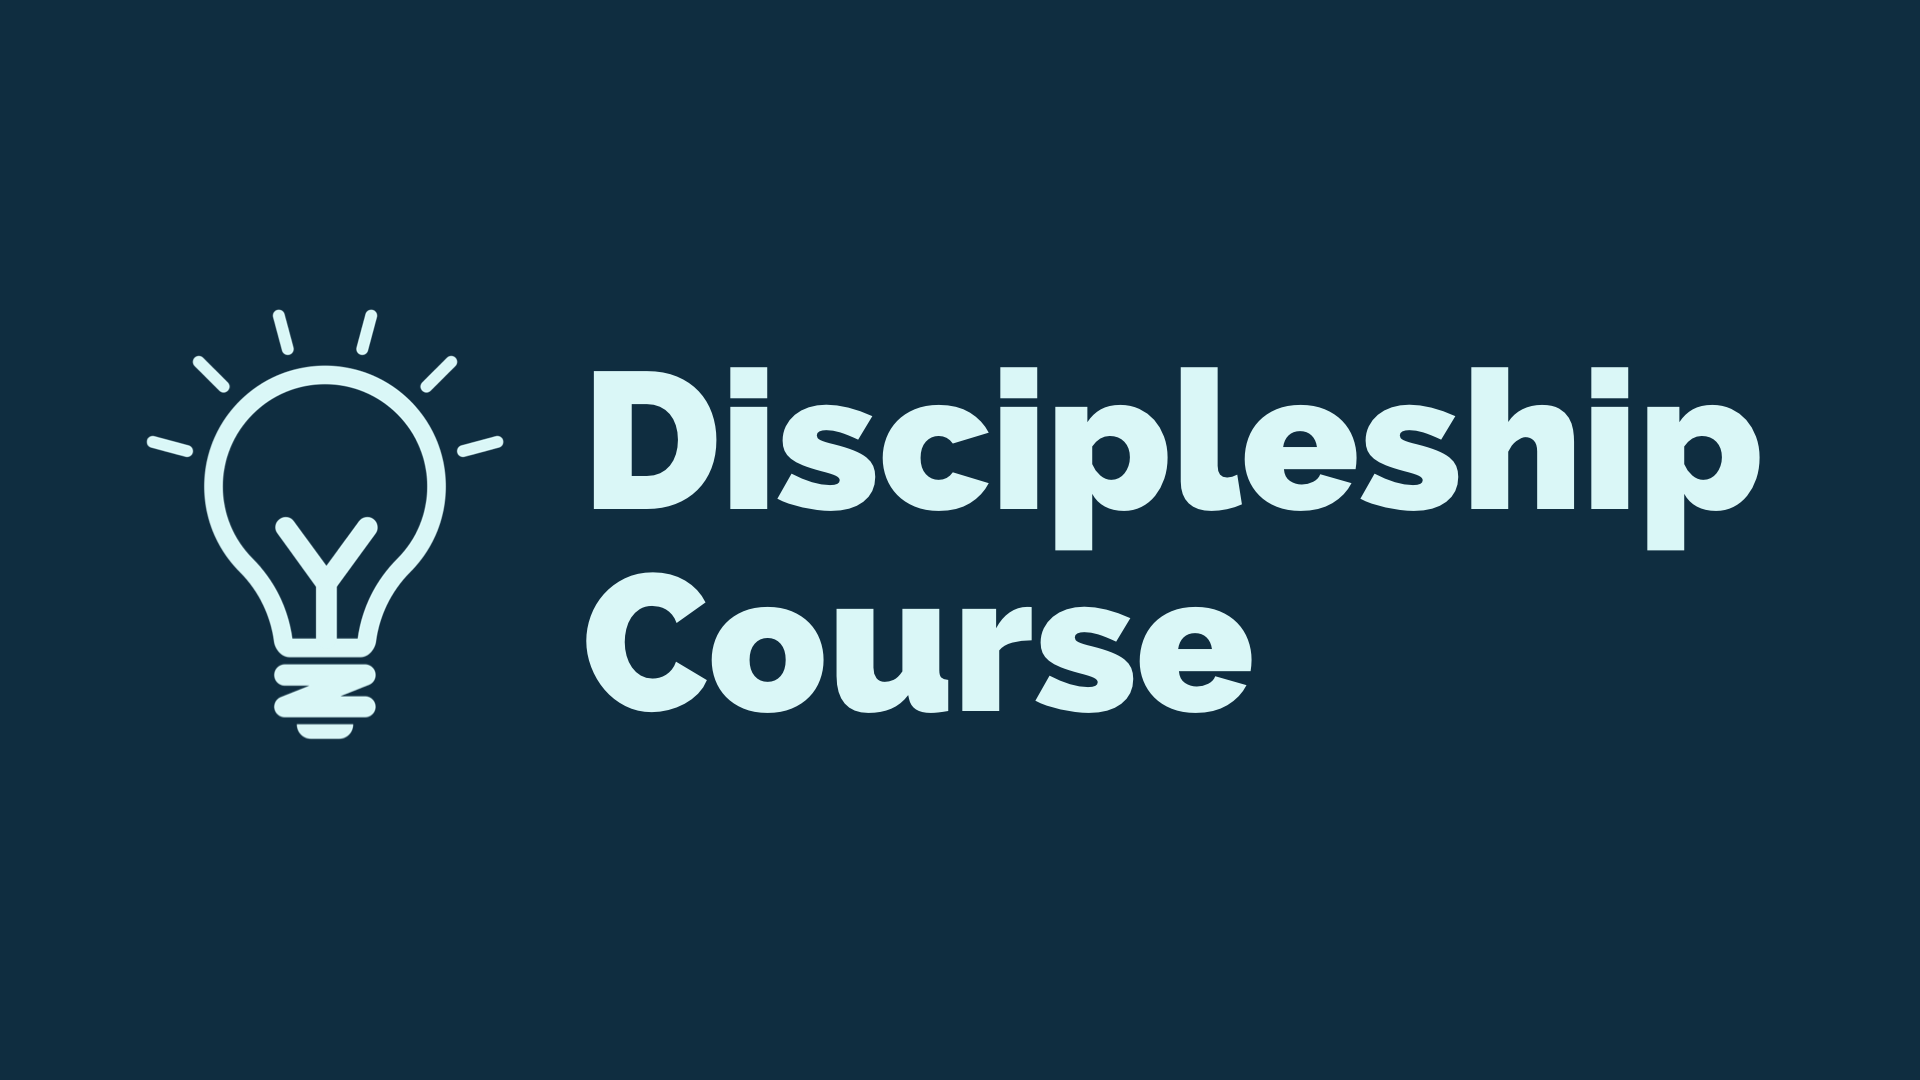 Discipleship Course - no dates GS image